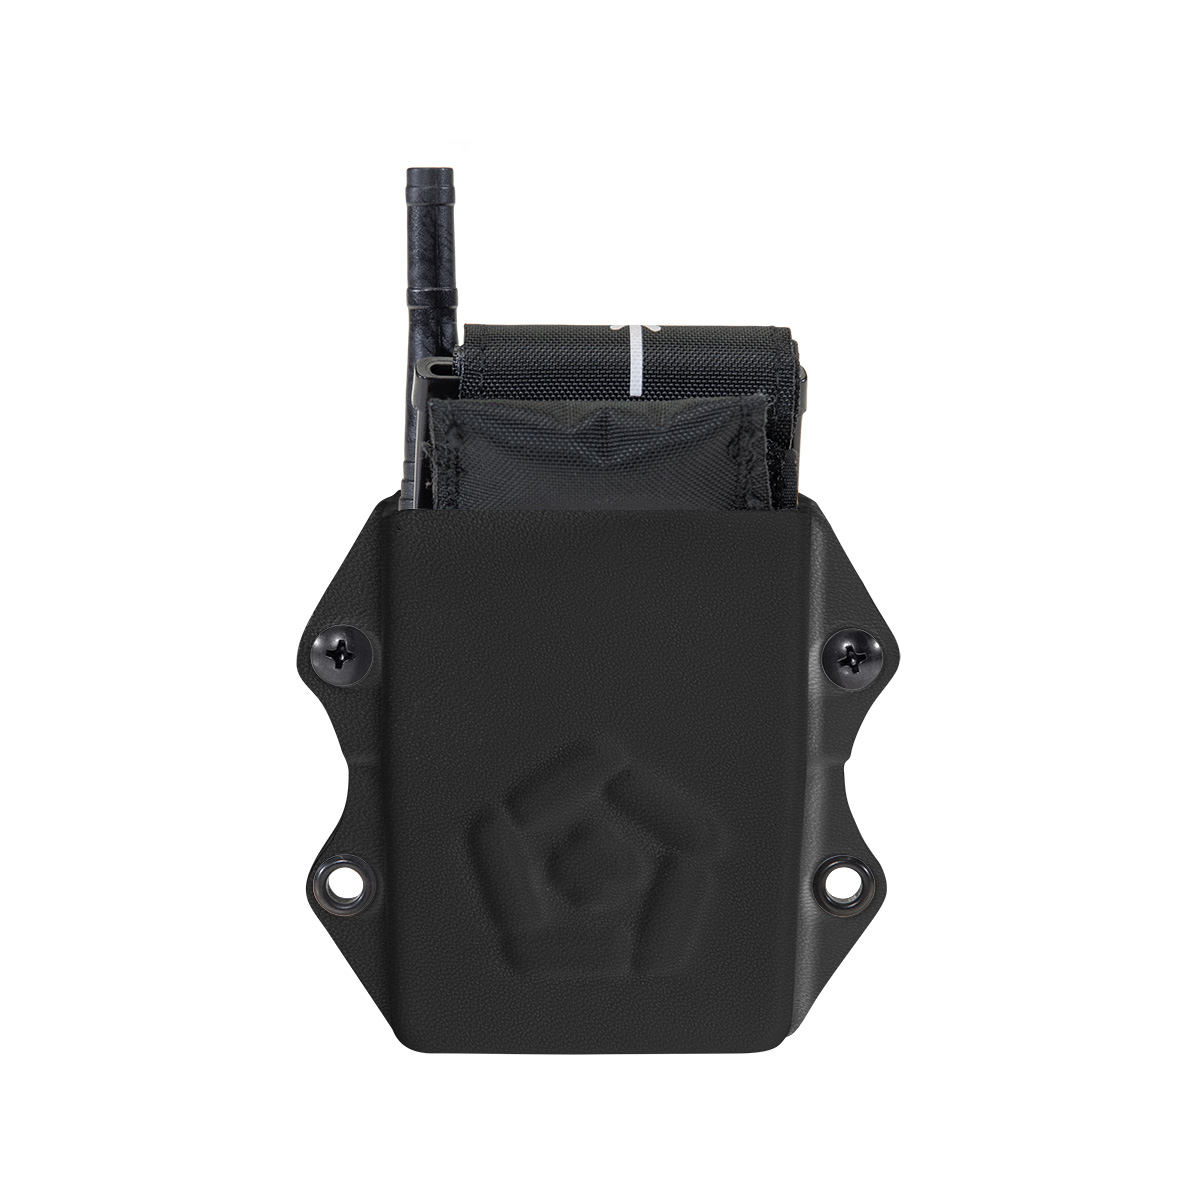 tmt rigid holster black front